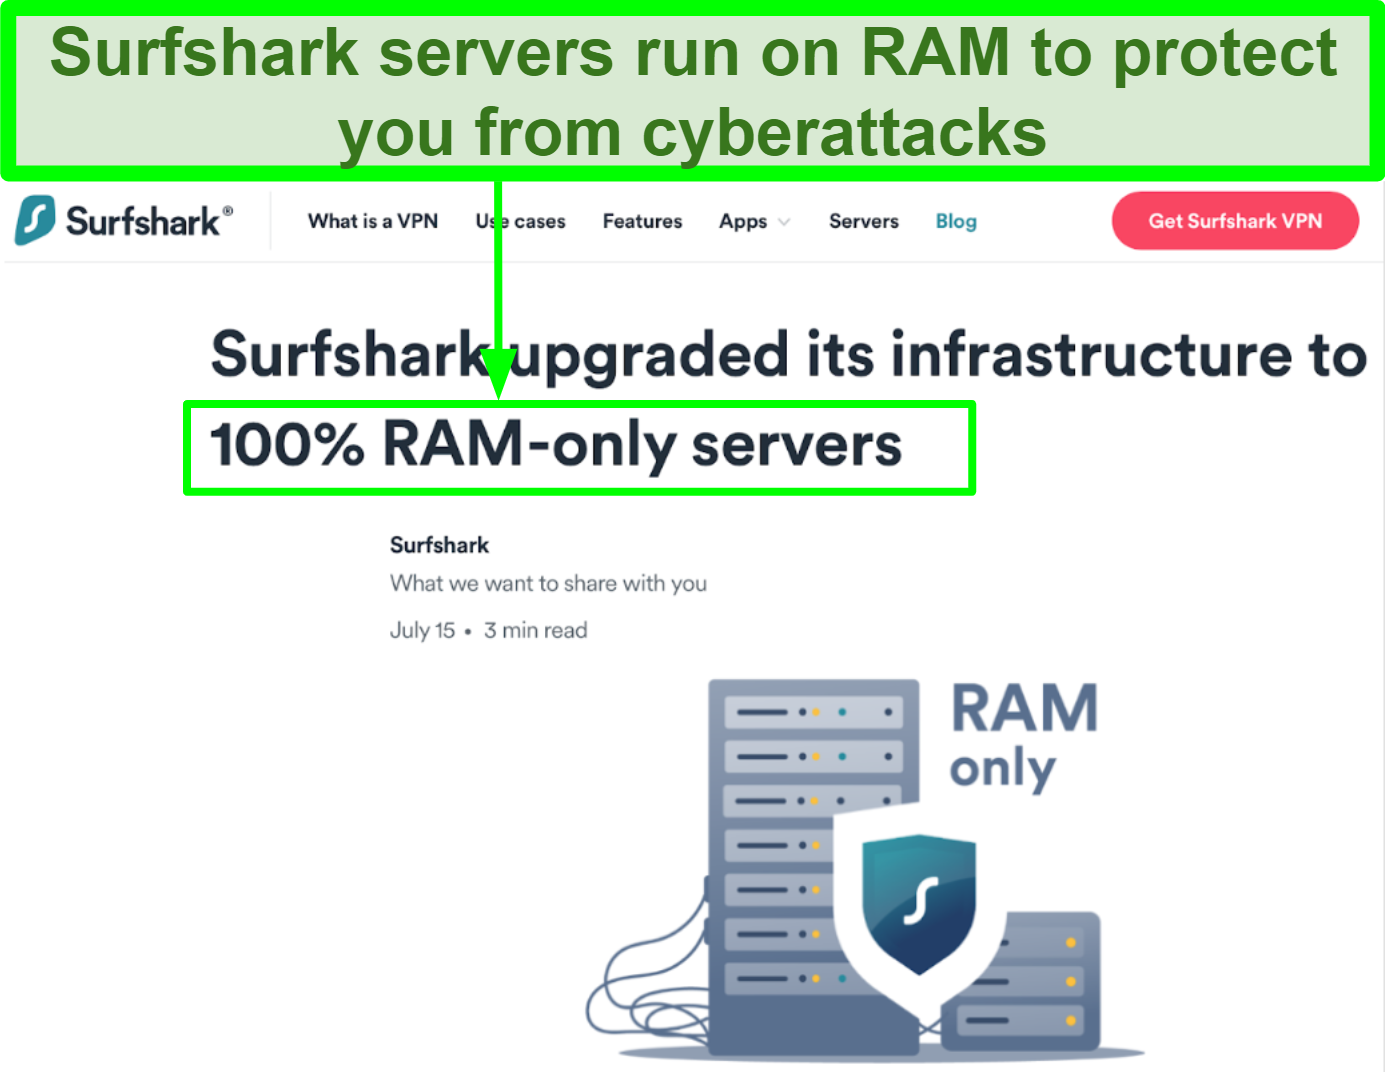 Screenshot of Surfshark website showing that all servers run on RAM